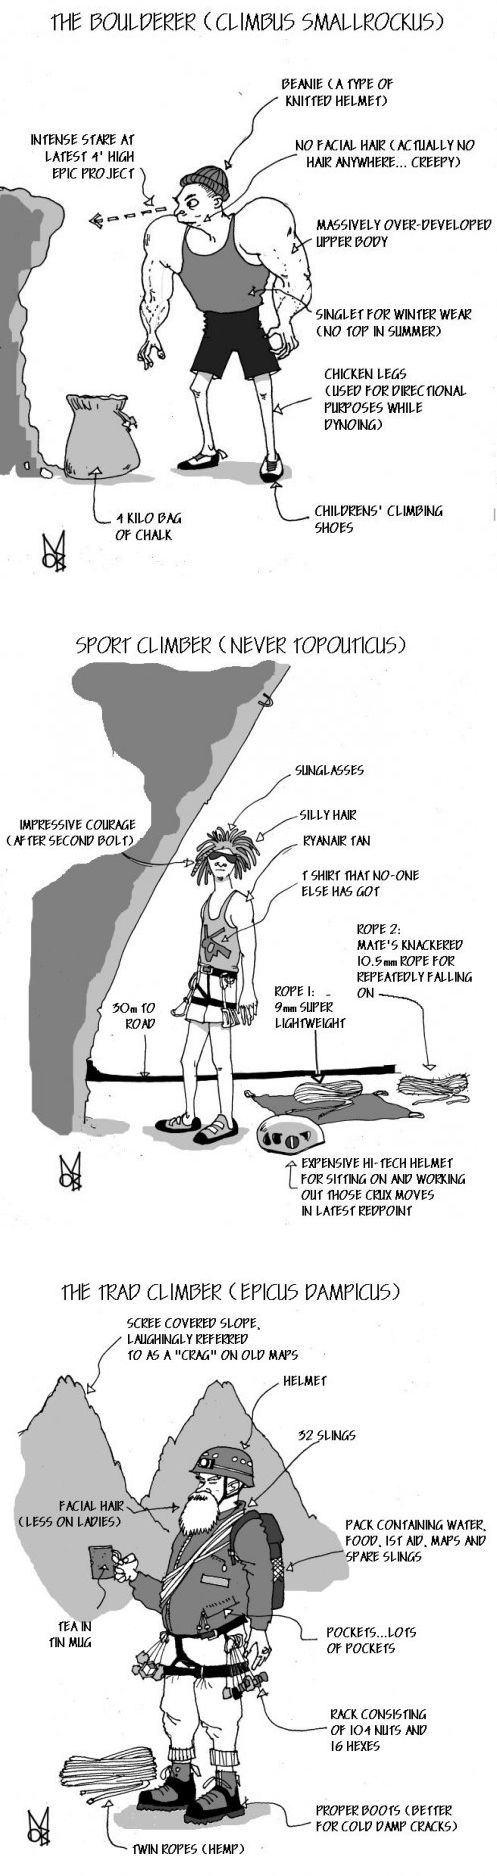 Scientific Description of a climber #Climbing #Outdoors http://www.cotswoldoutdoor.com/be/browse-by-activity/rock-climbing